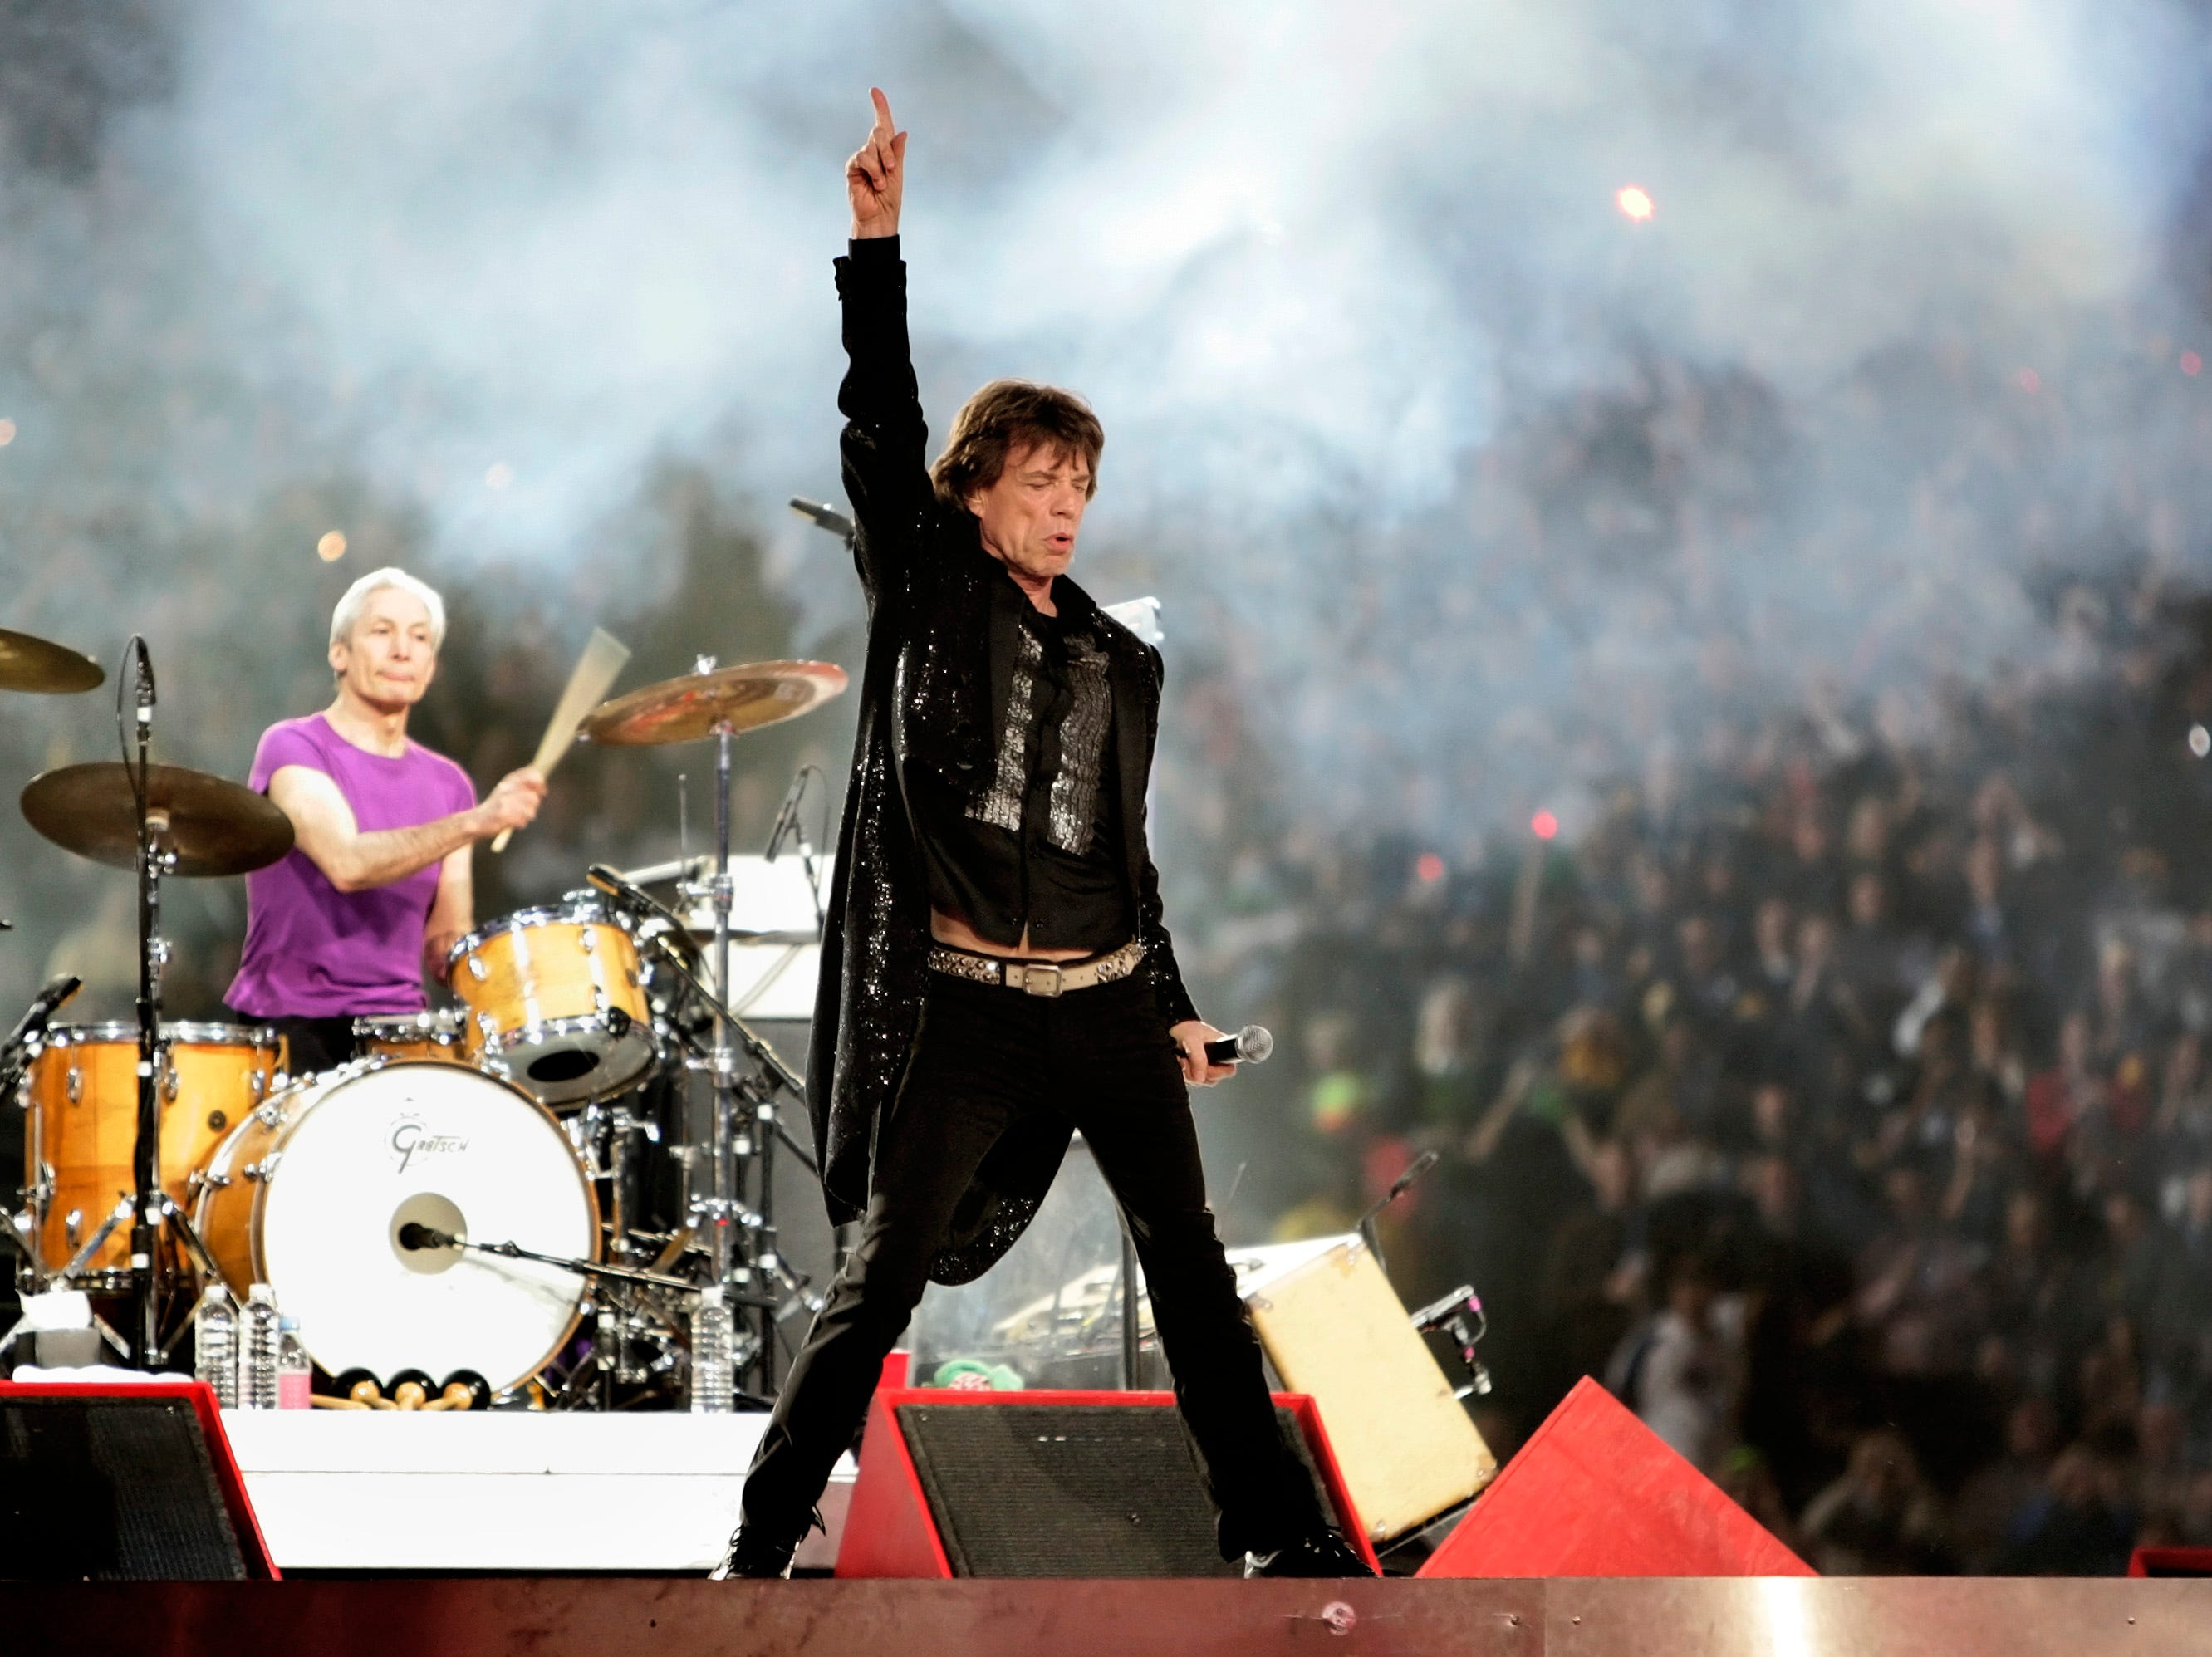 Mick Jagger performs with the Rolling Stones at halftime of the Super Bowl XL football game Sunday, Feb. 5, 2006, in Detroit. In the background is drummer Charlie Watts.  (AP Photo/David J. Phillip)